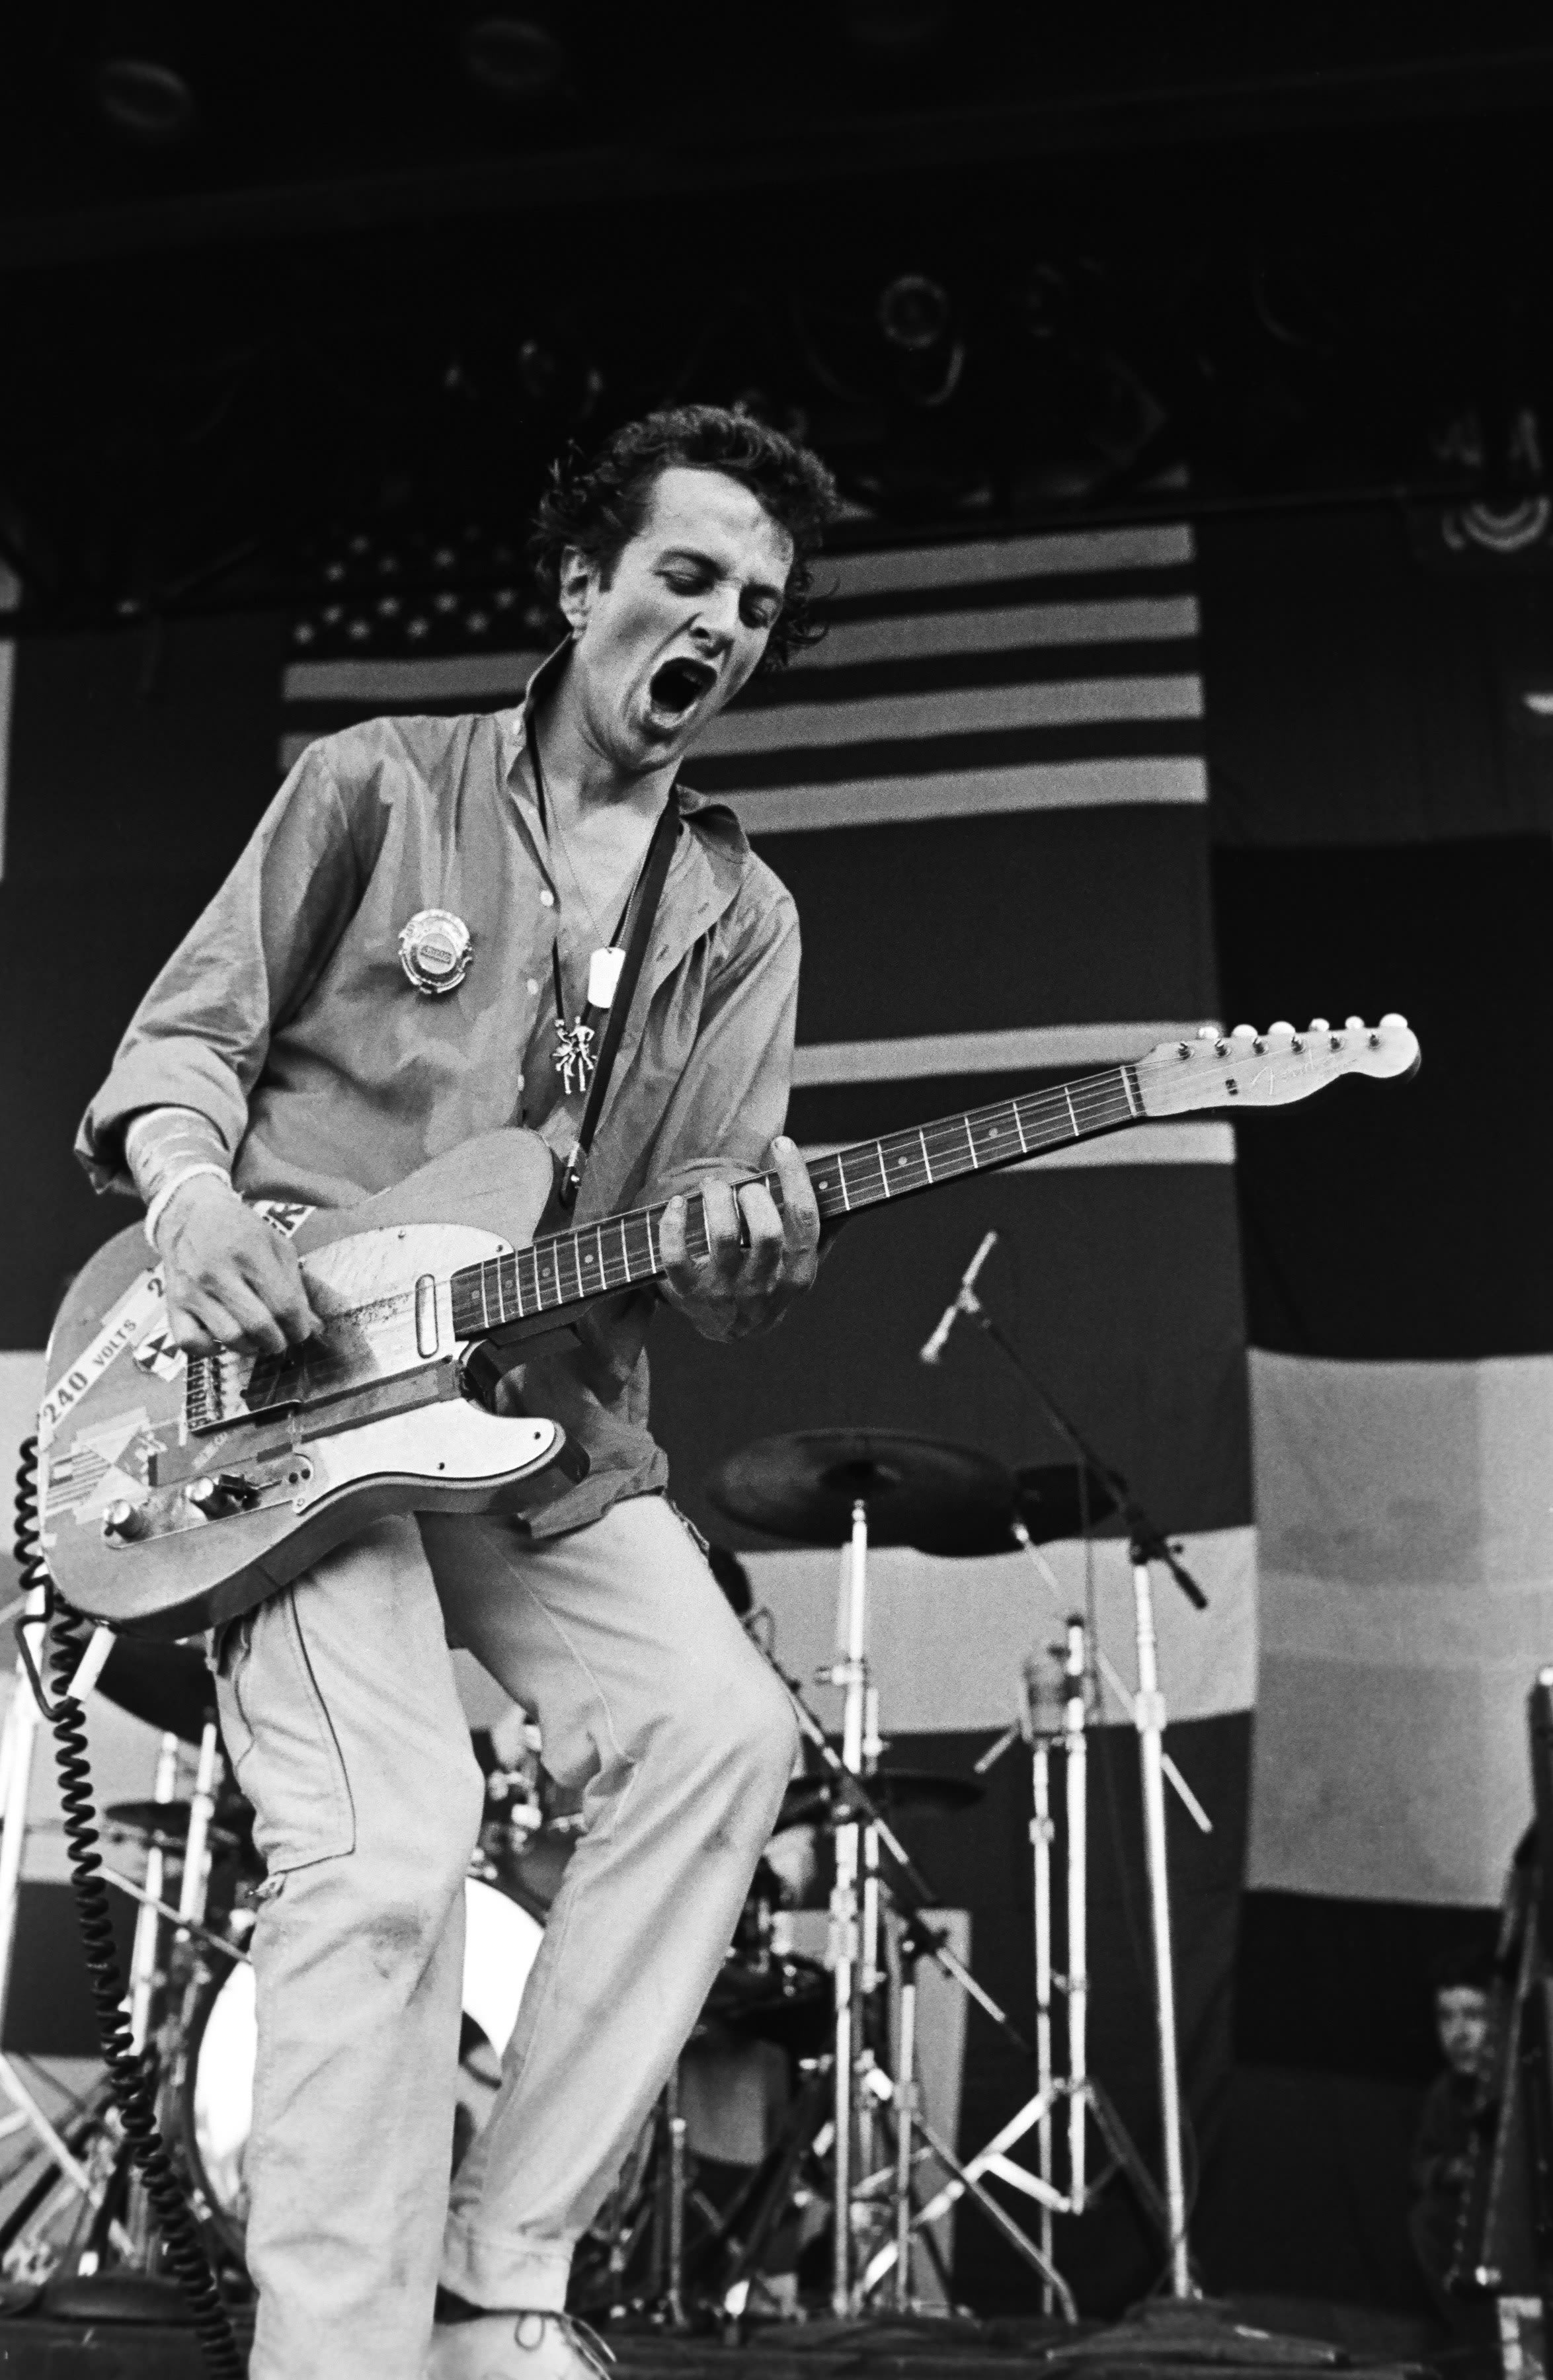 Joe Strummer, of punk rock band The Clash, performs onstage (Getty Images)